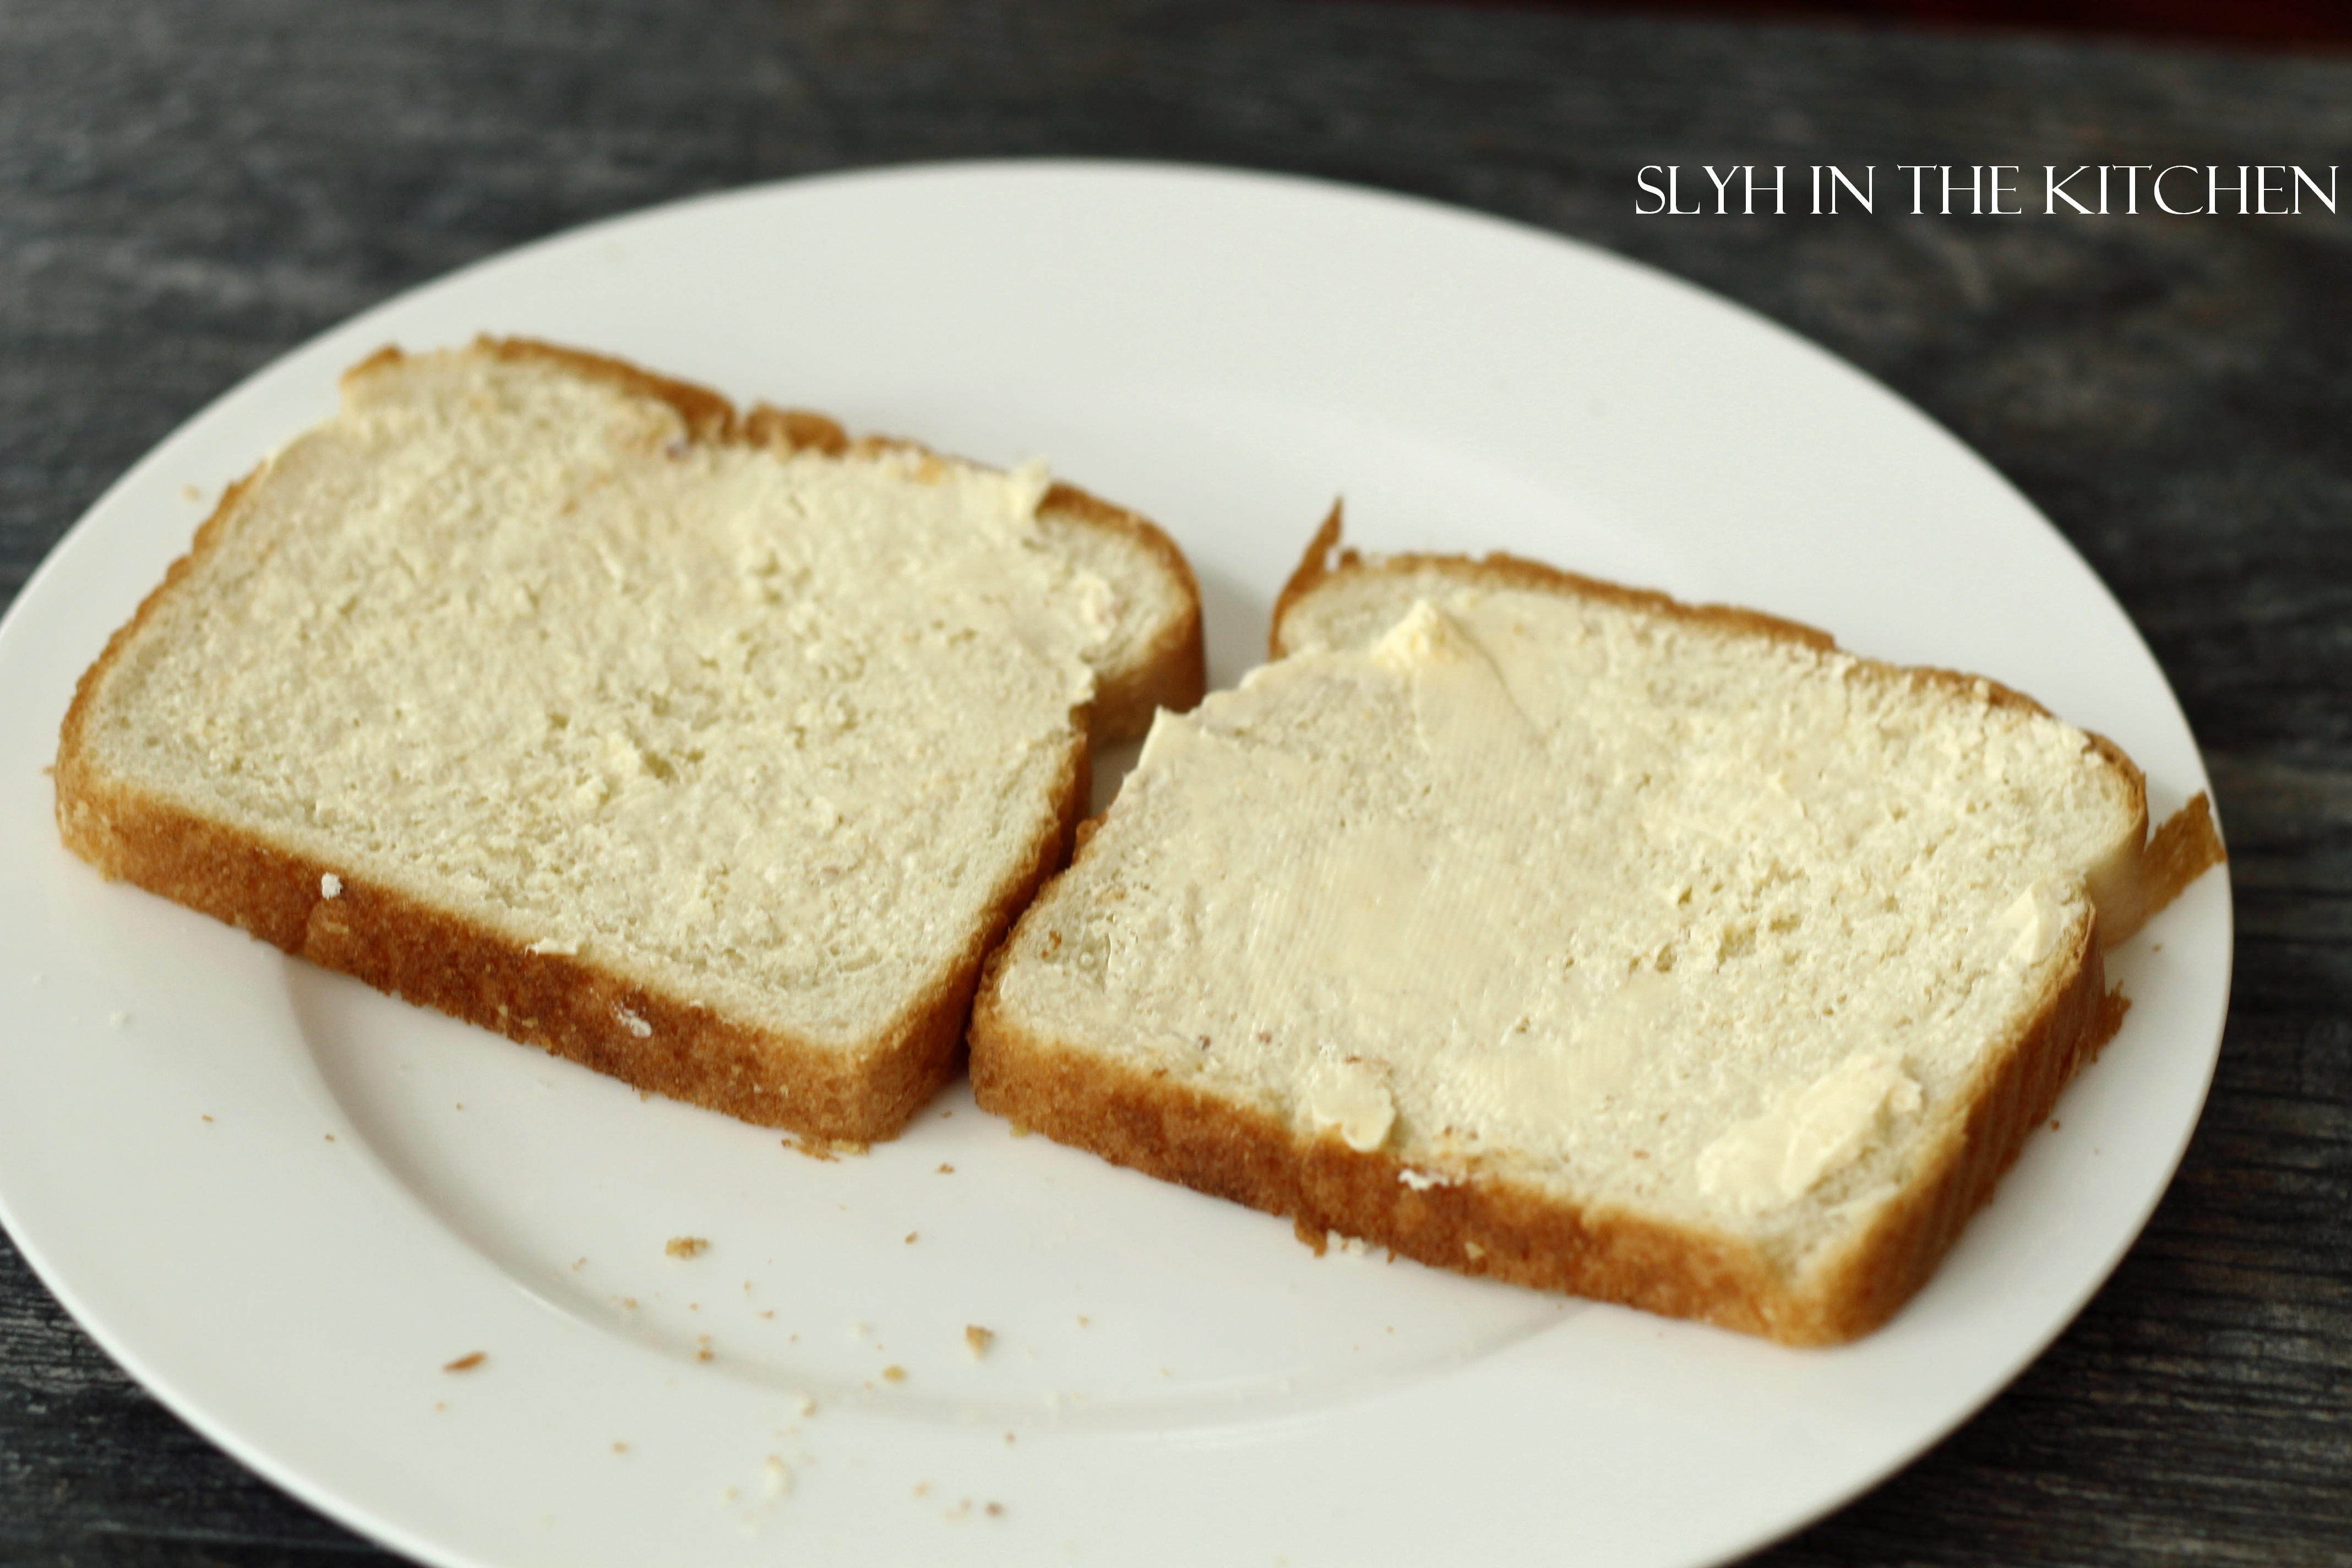 how to eat cheese slices with bread